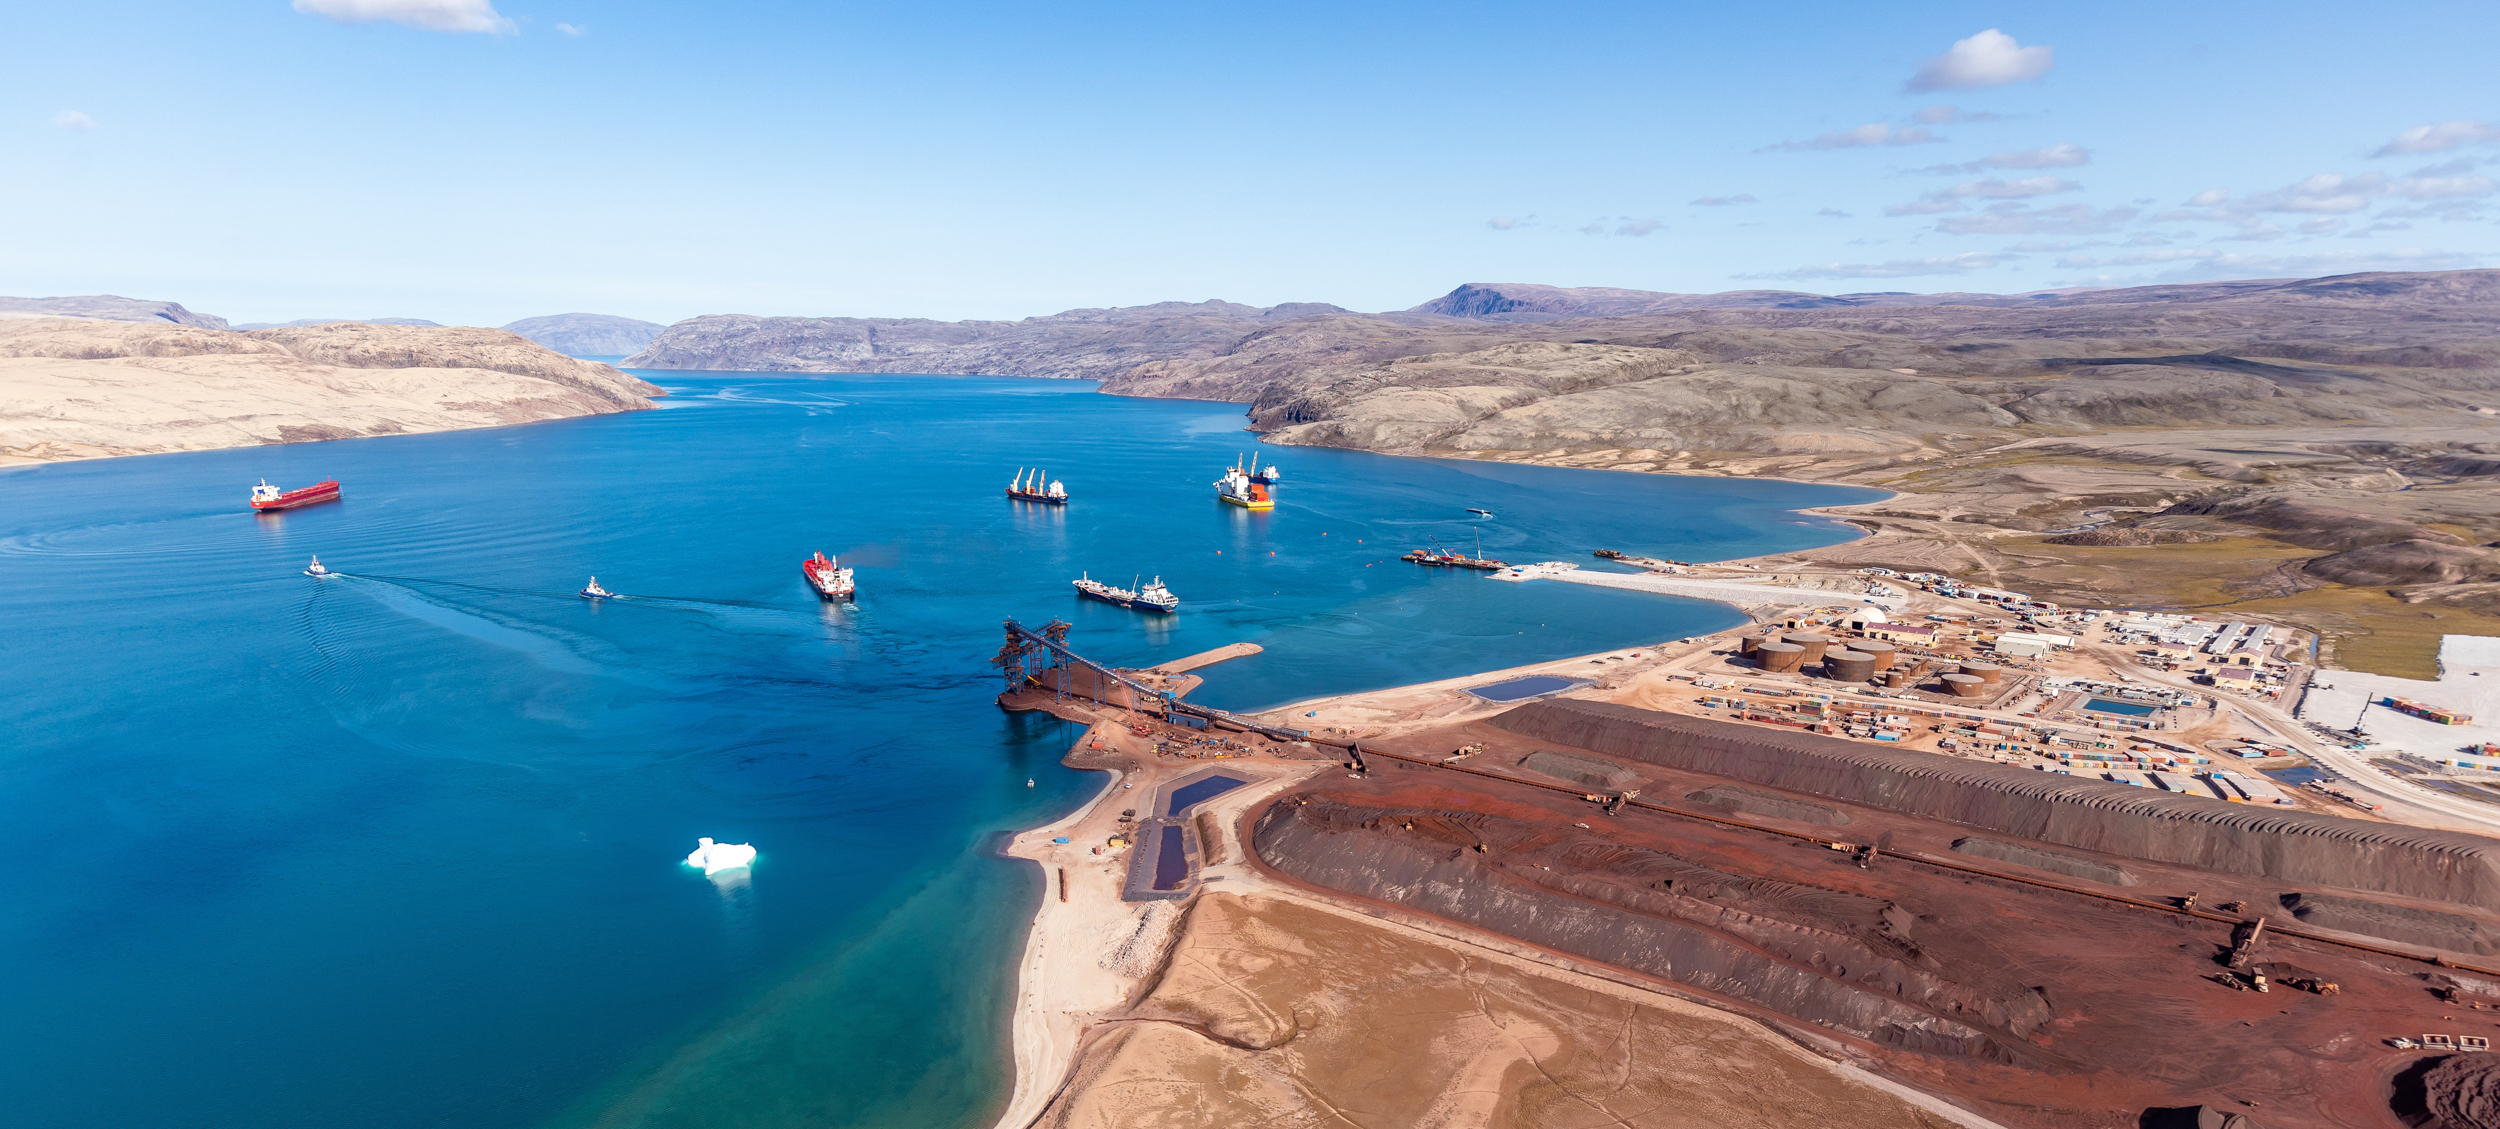 Baffinland's mining port at Milne Inlet, an arm of Tasiujag, has dramatically increased the shipping traffic in the area (Courtesy of Hark Nijjar/Baffinland)